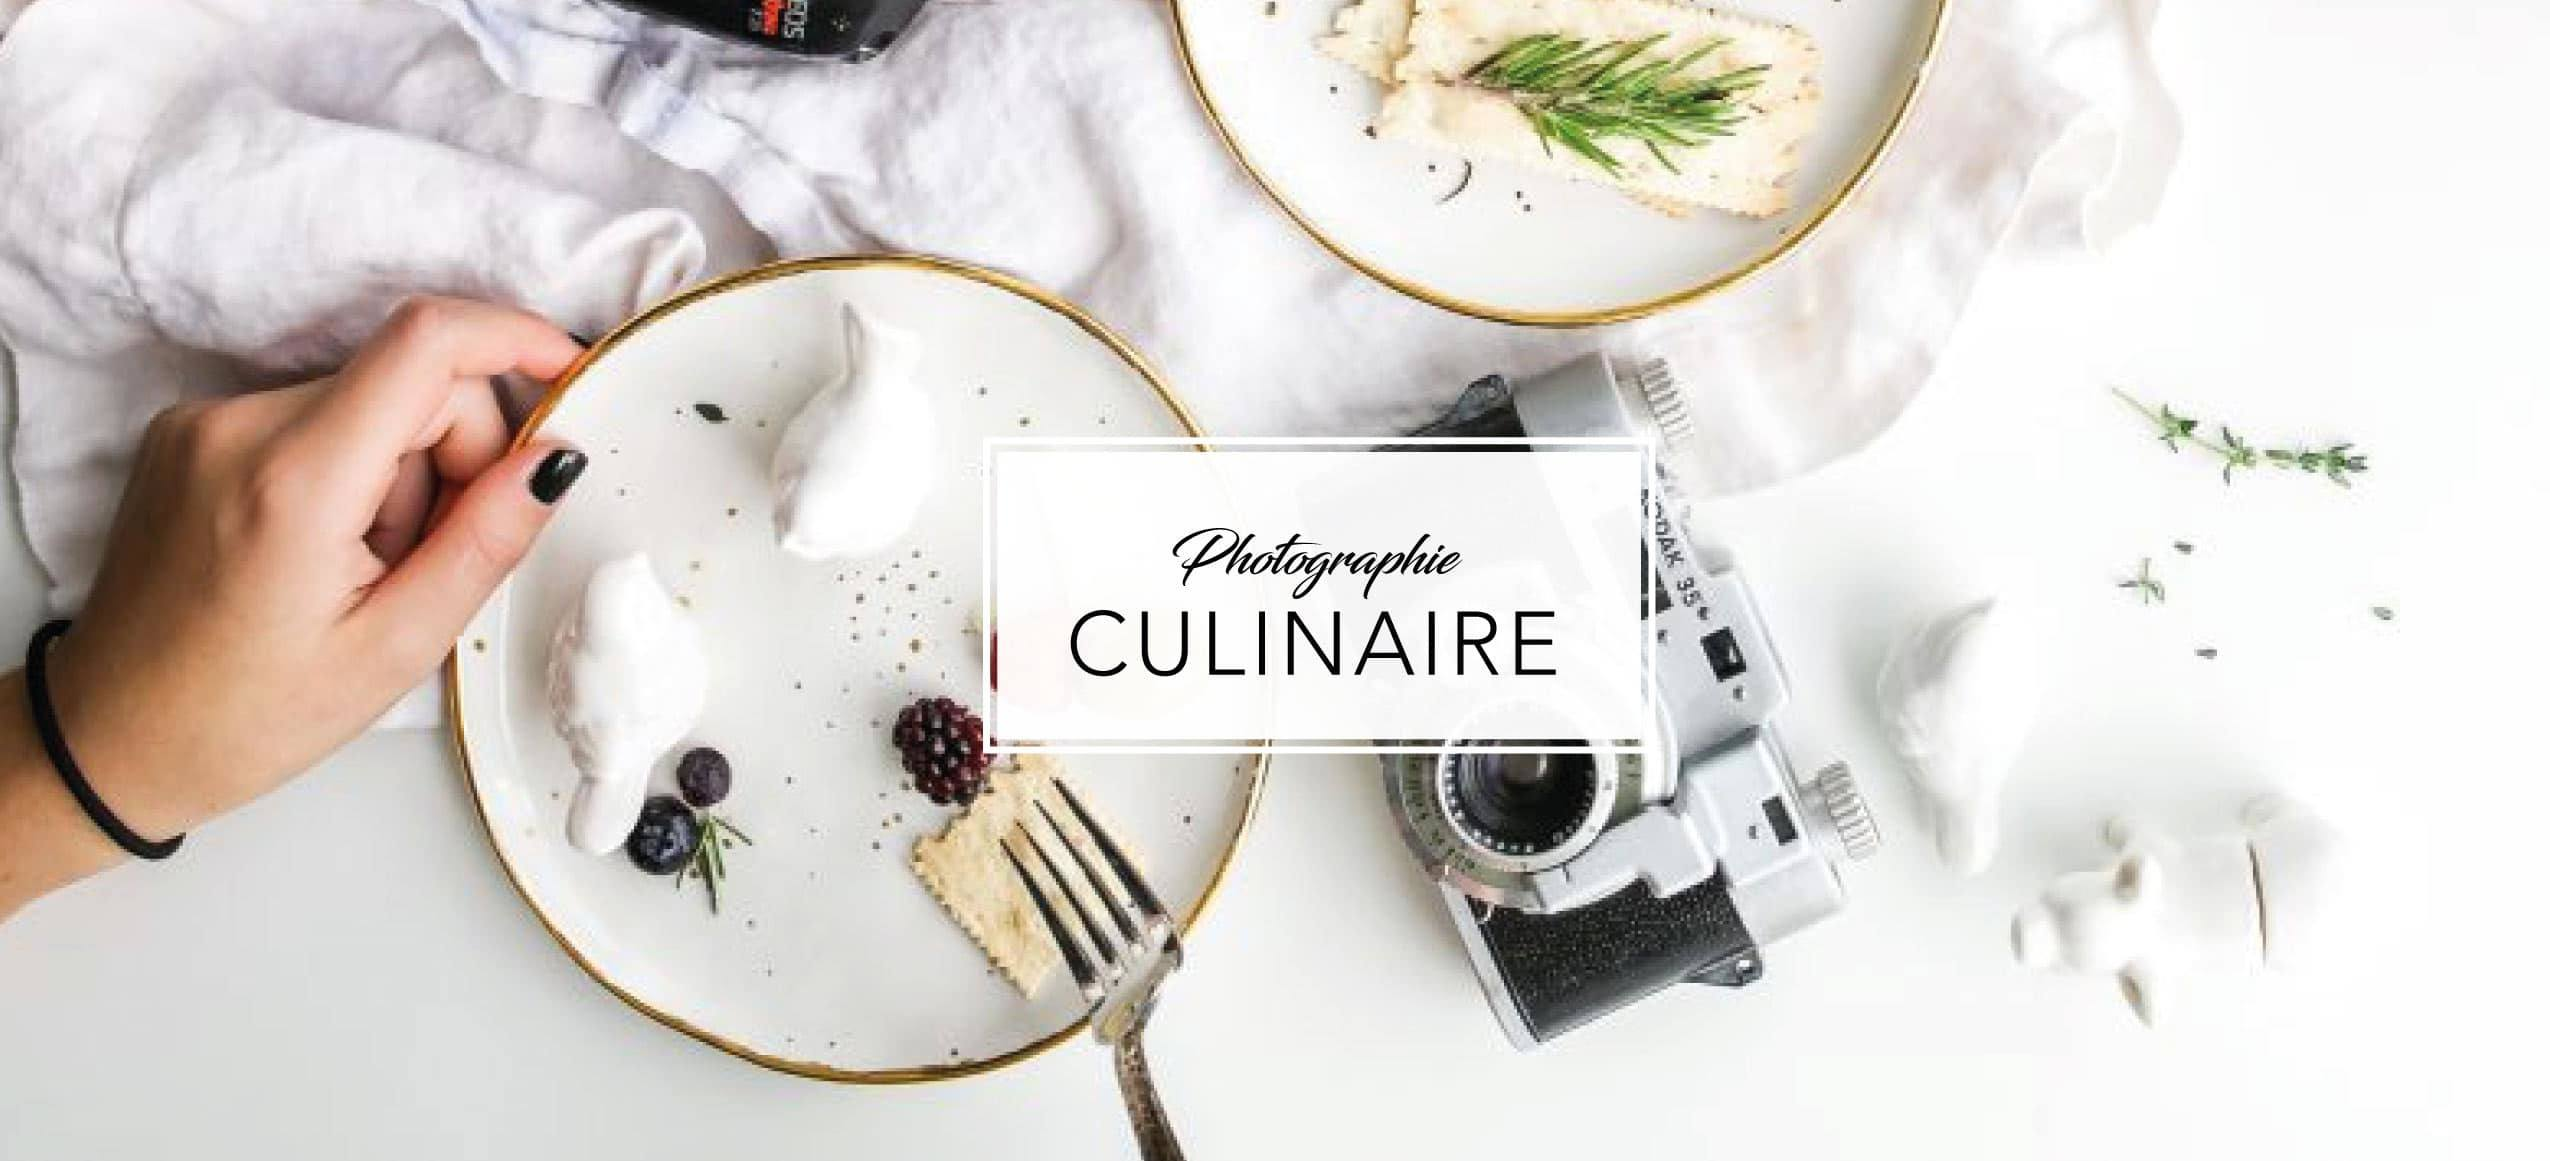 photographie-culinaire